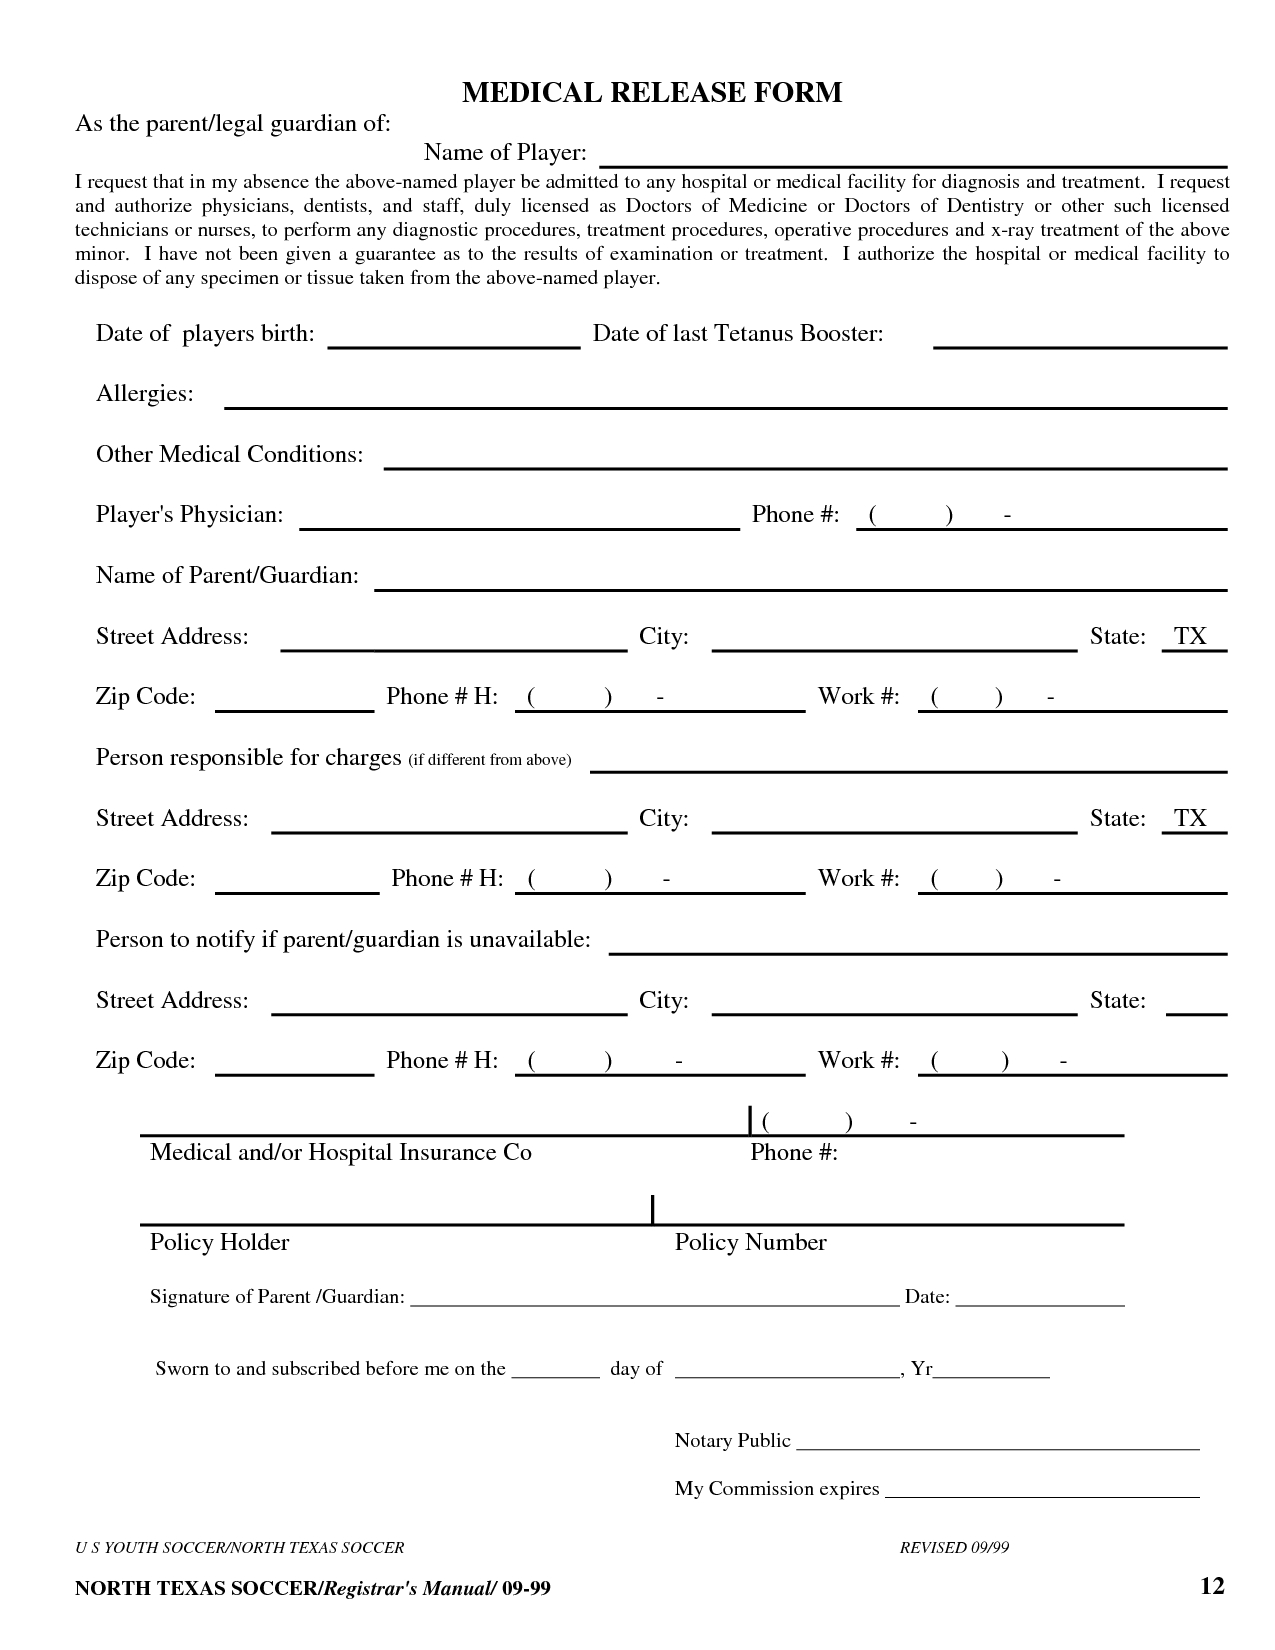 Free Printable Medical Release Form Template | Medical Release Form - Free Printable Medical Release Form